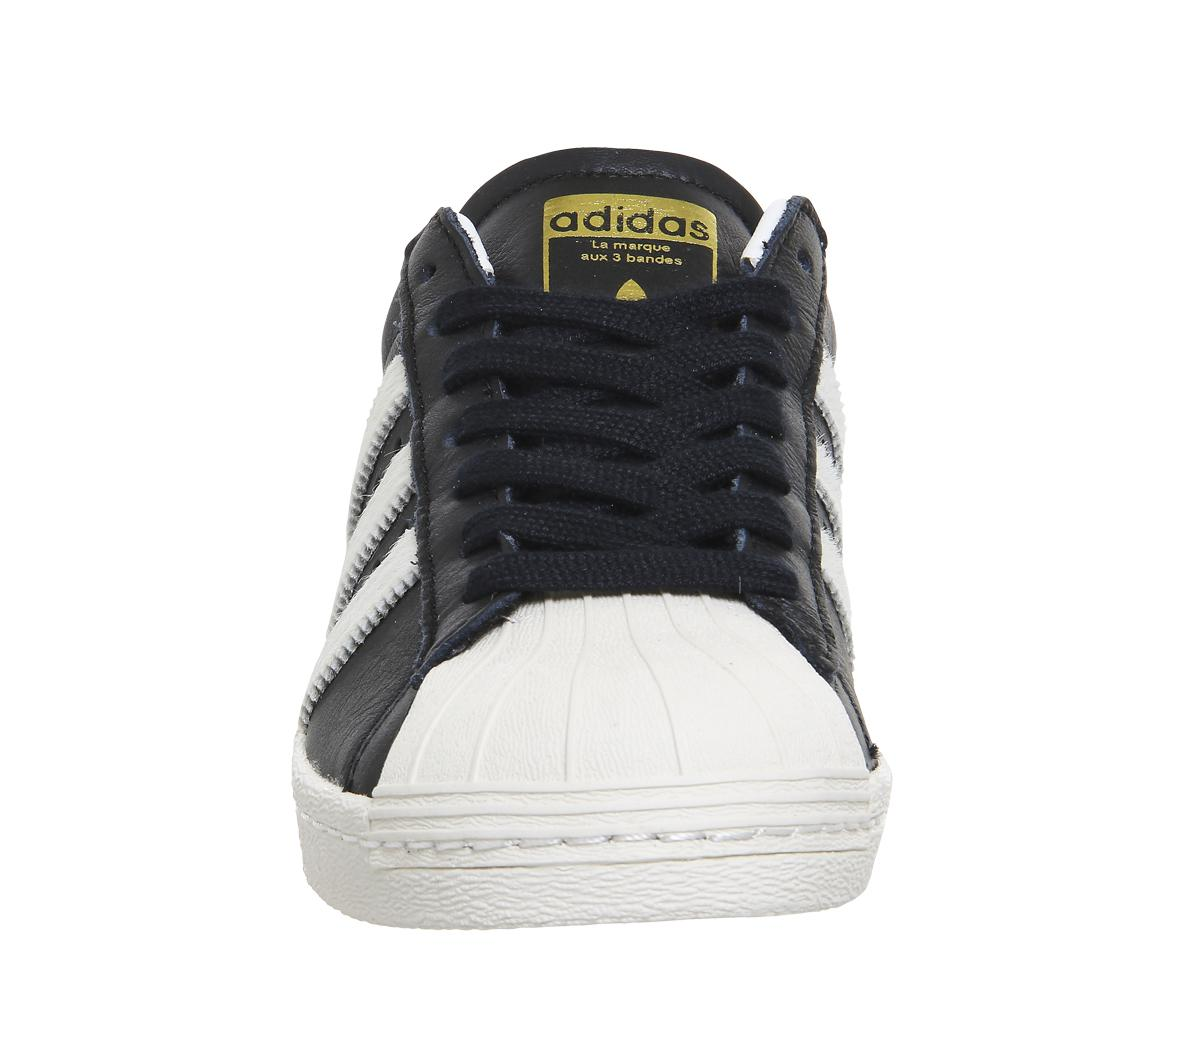 adidas Leather Superstar 80s in Black